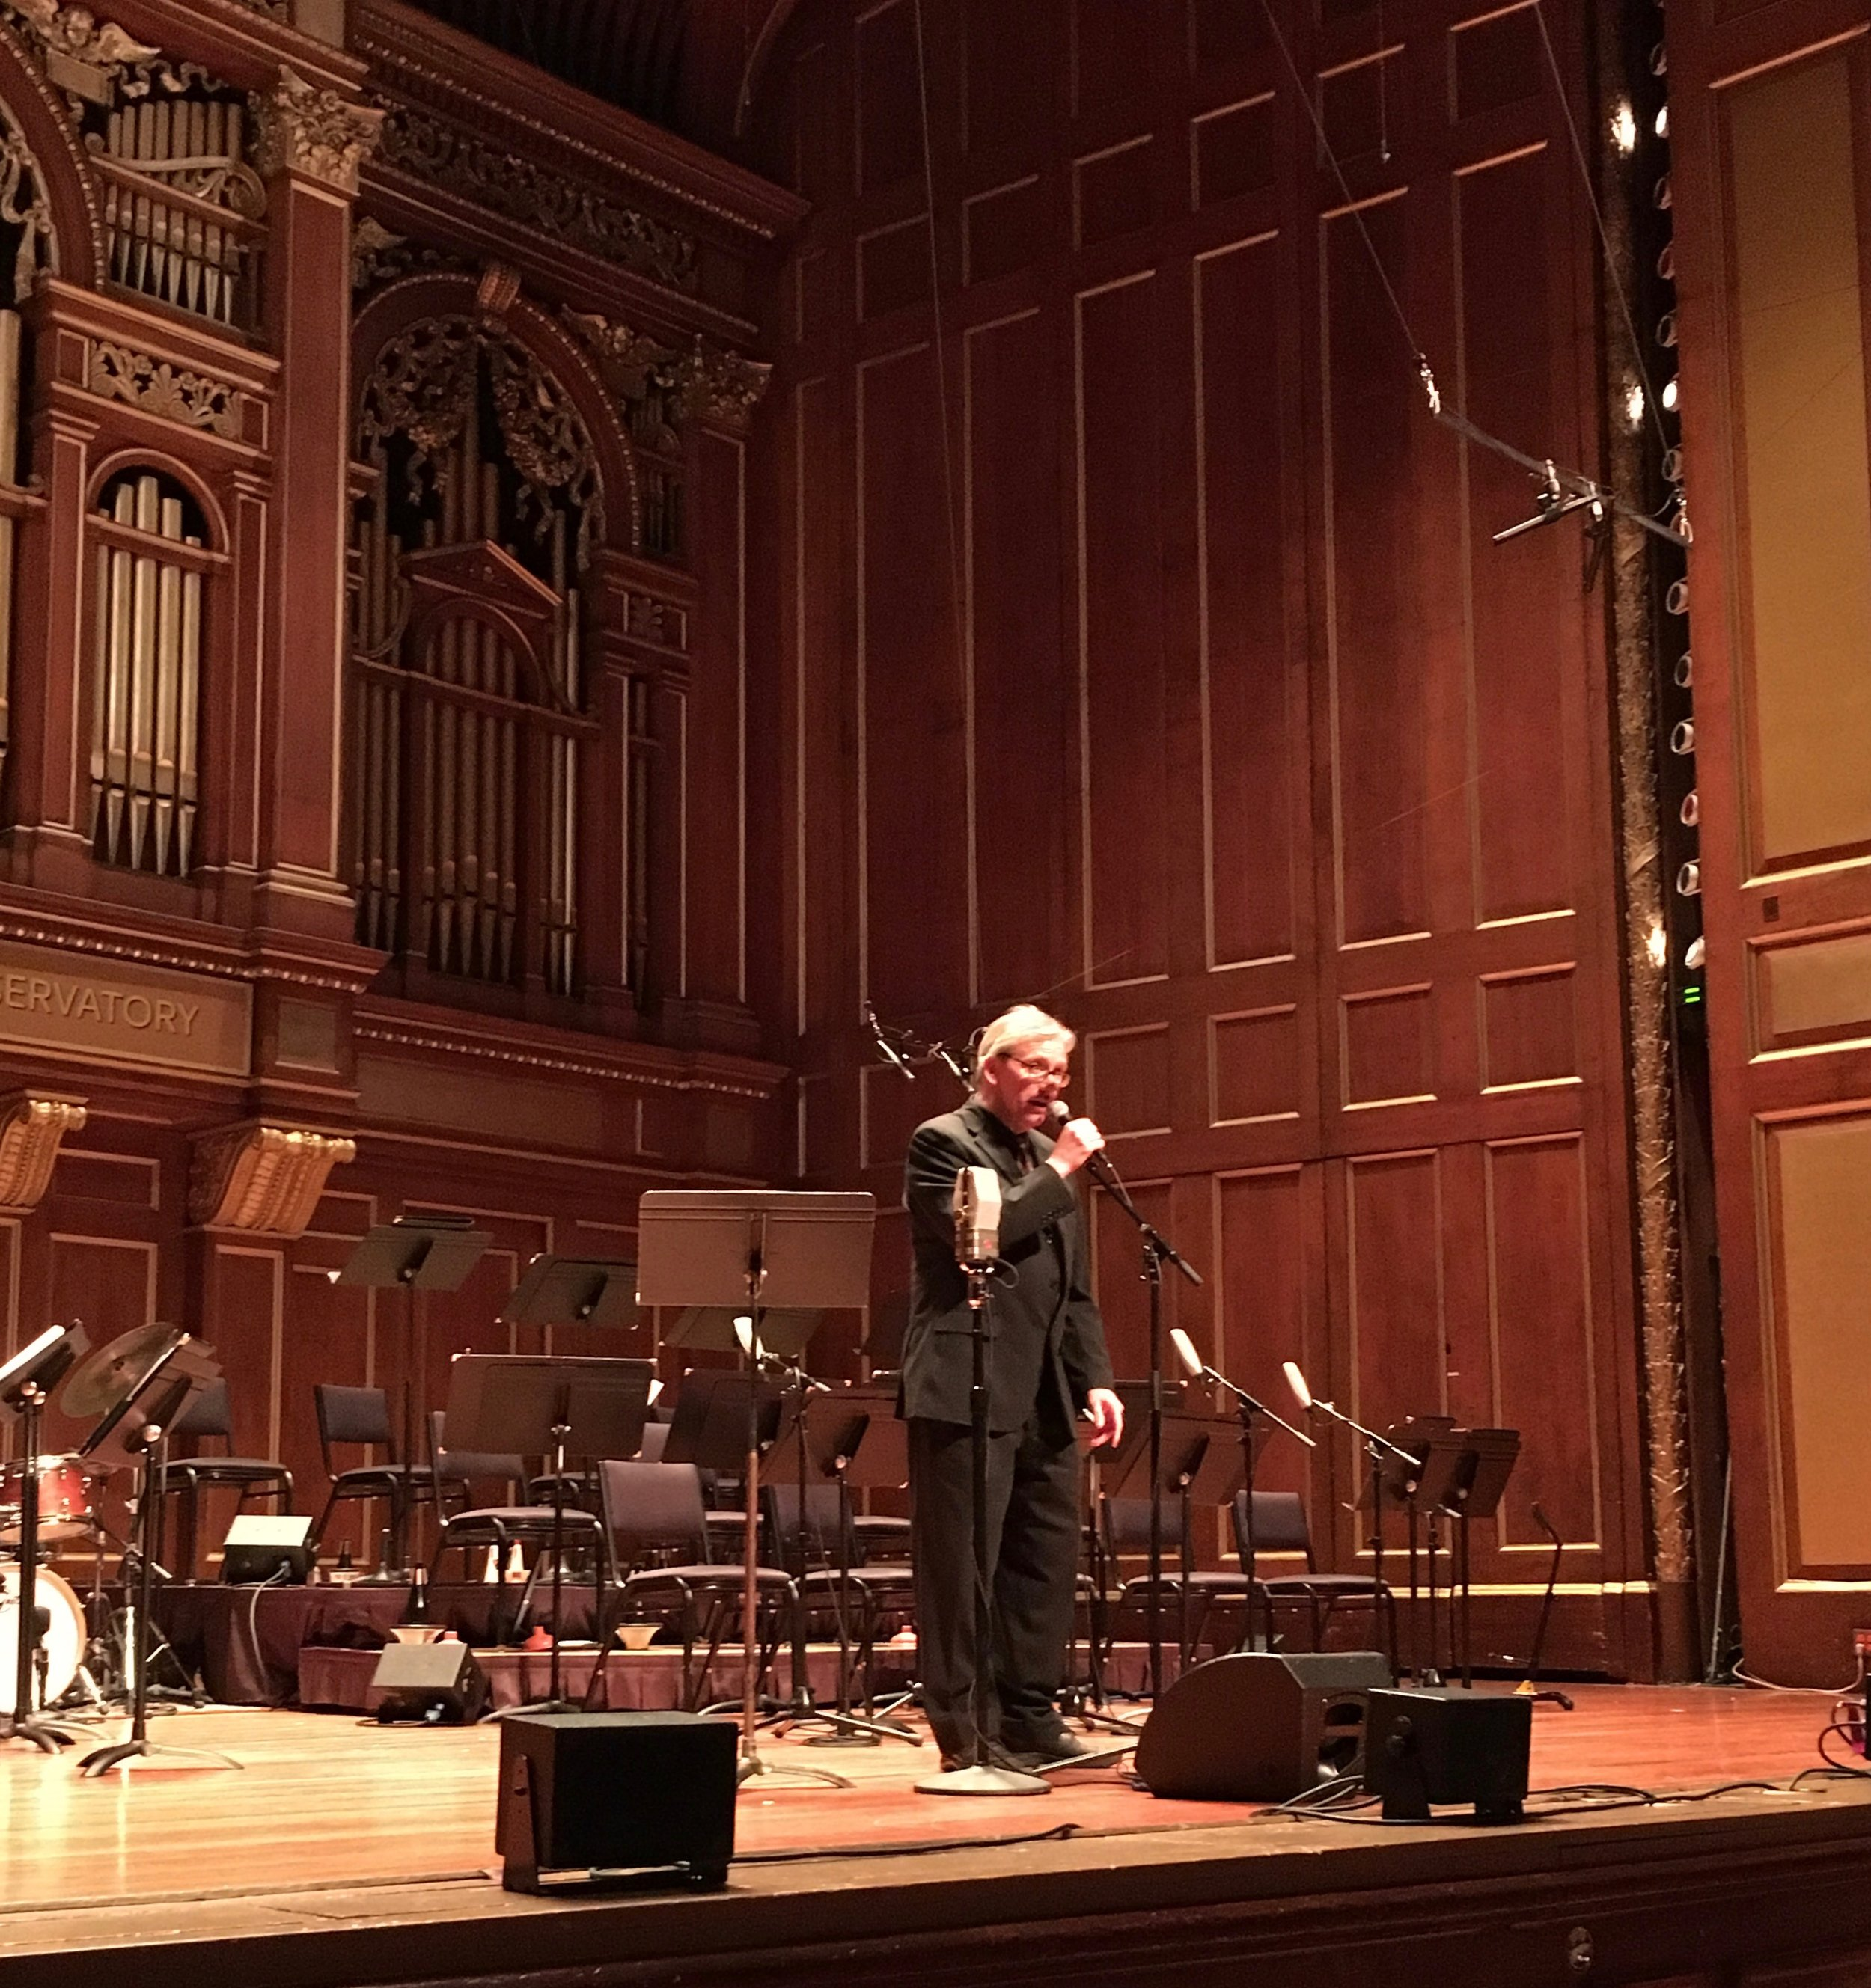 Ken Schaphorst, composer and director of New England Conservatory's Jazz Studies Program, welcomes the Jordan Hall audience.